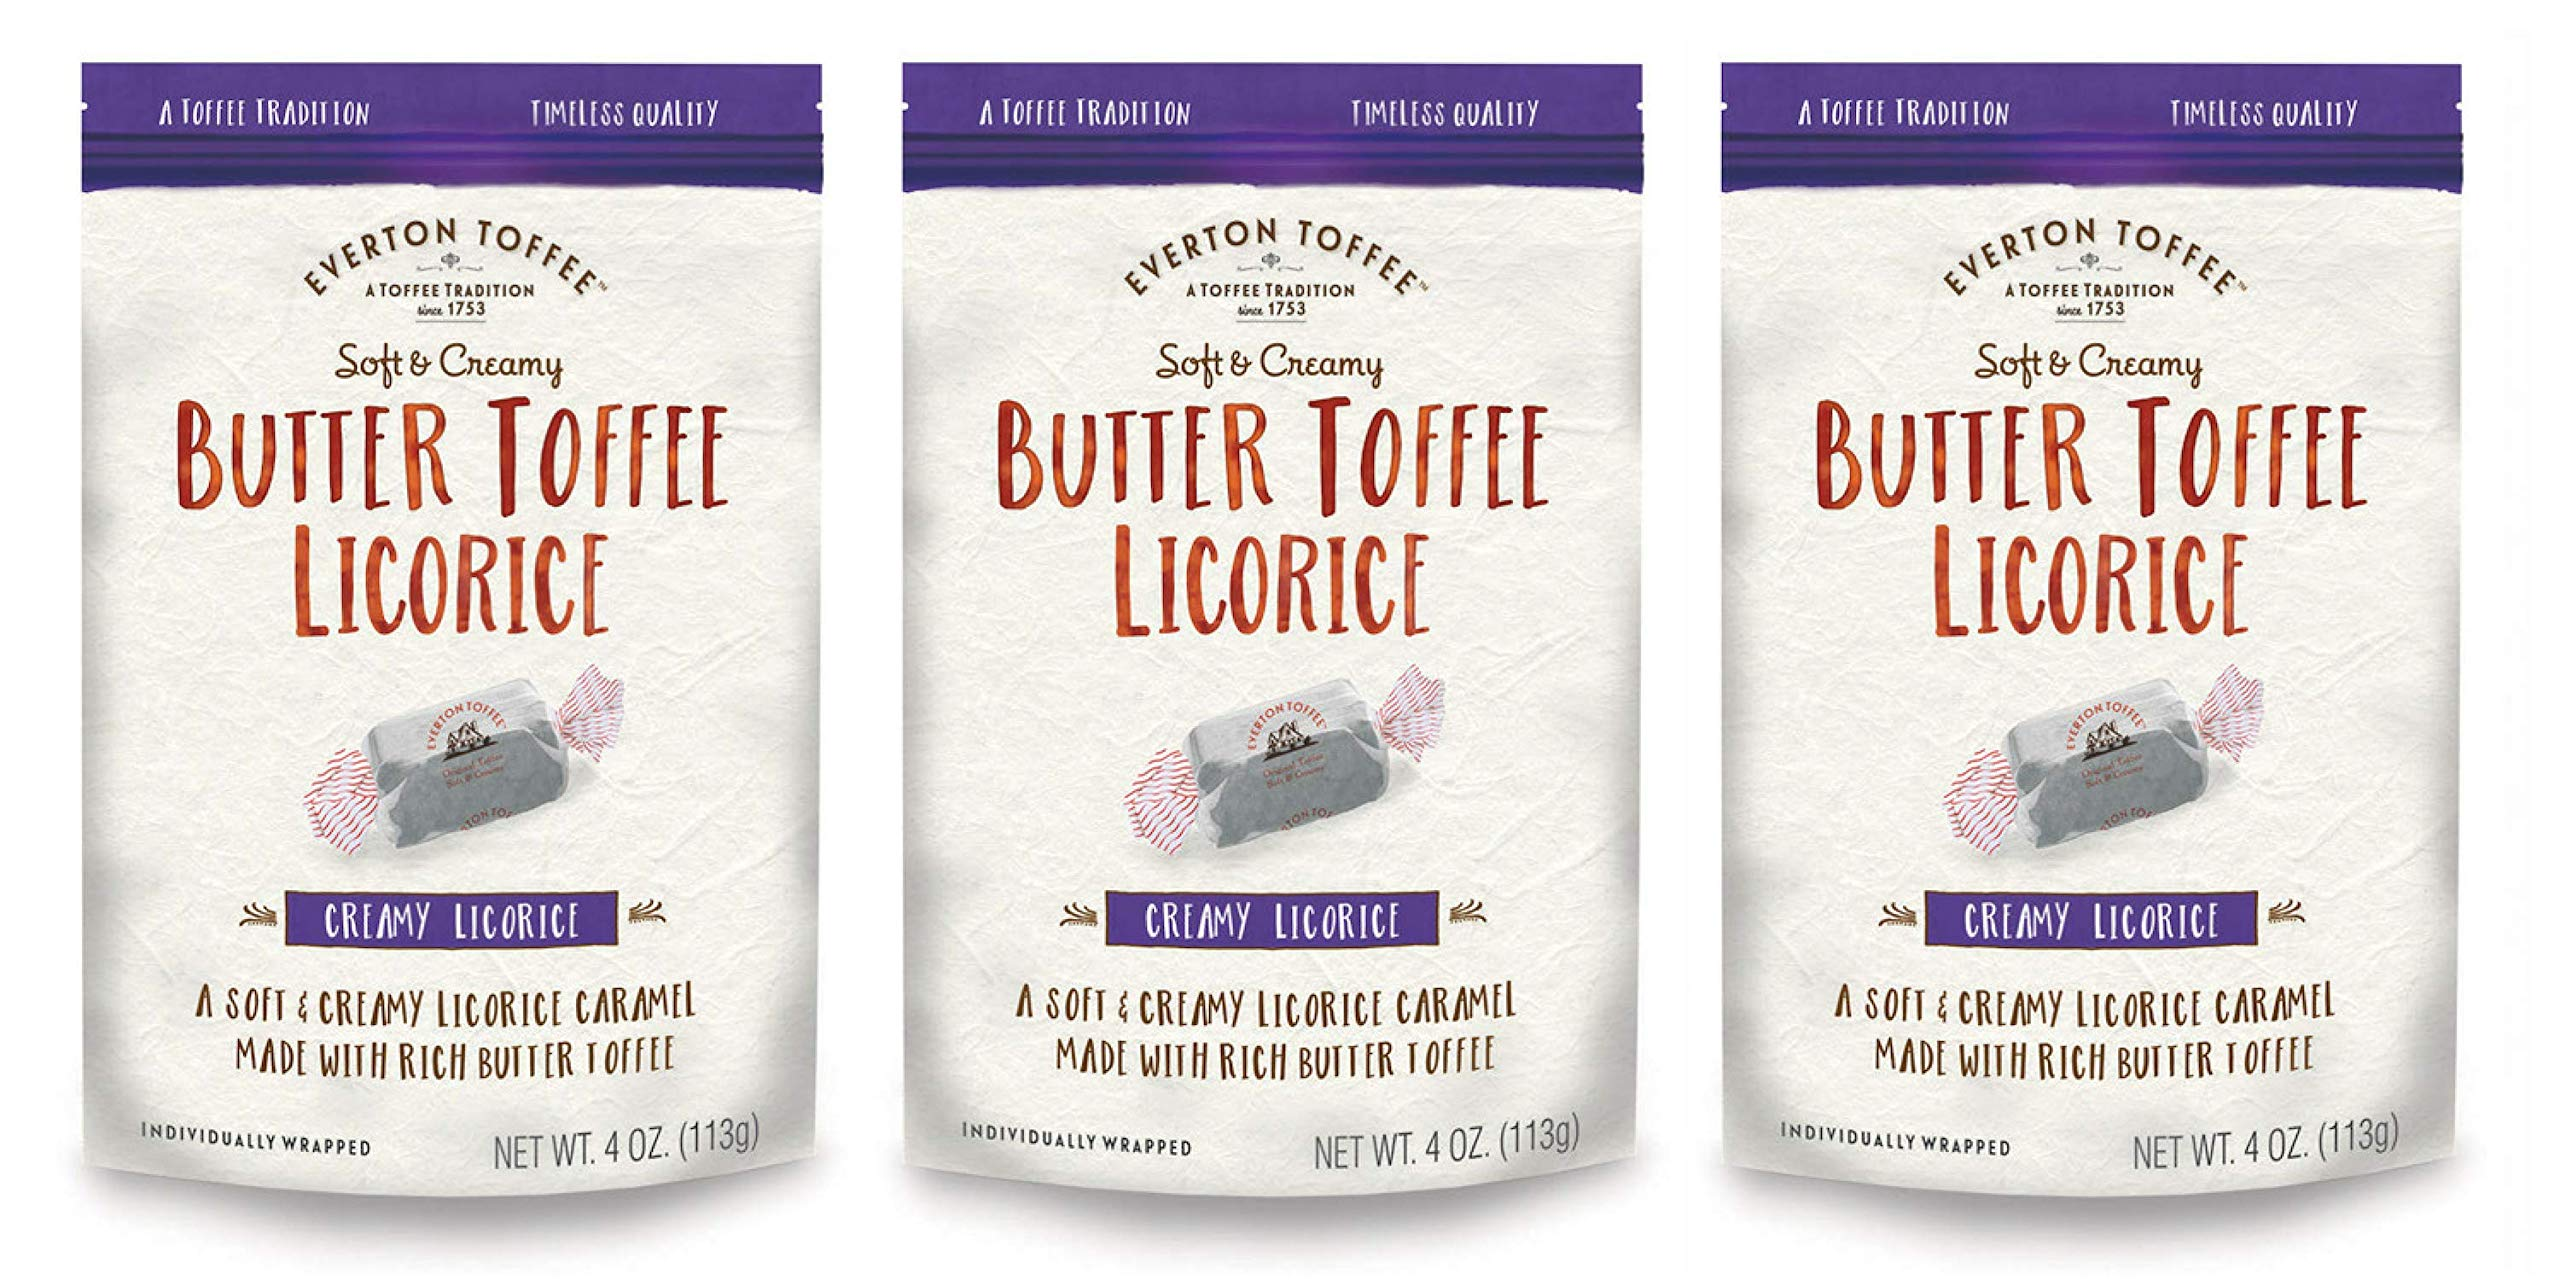 Everton Toffee Butter Toffee Caramels, Licorice Flavor (4 oz. bag, 3-pack). Gourmet, Artisan Soft and Creamy Toffee Caramels, Small Batch Crafted Carmel Candy Treats by Everton Toffee